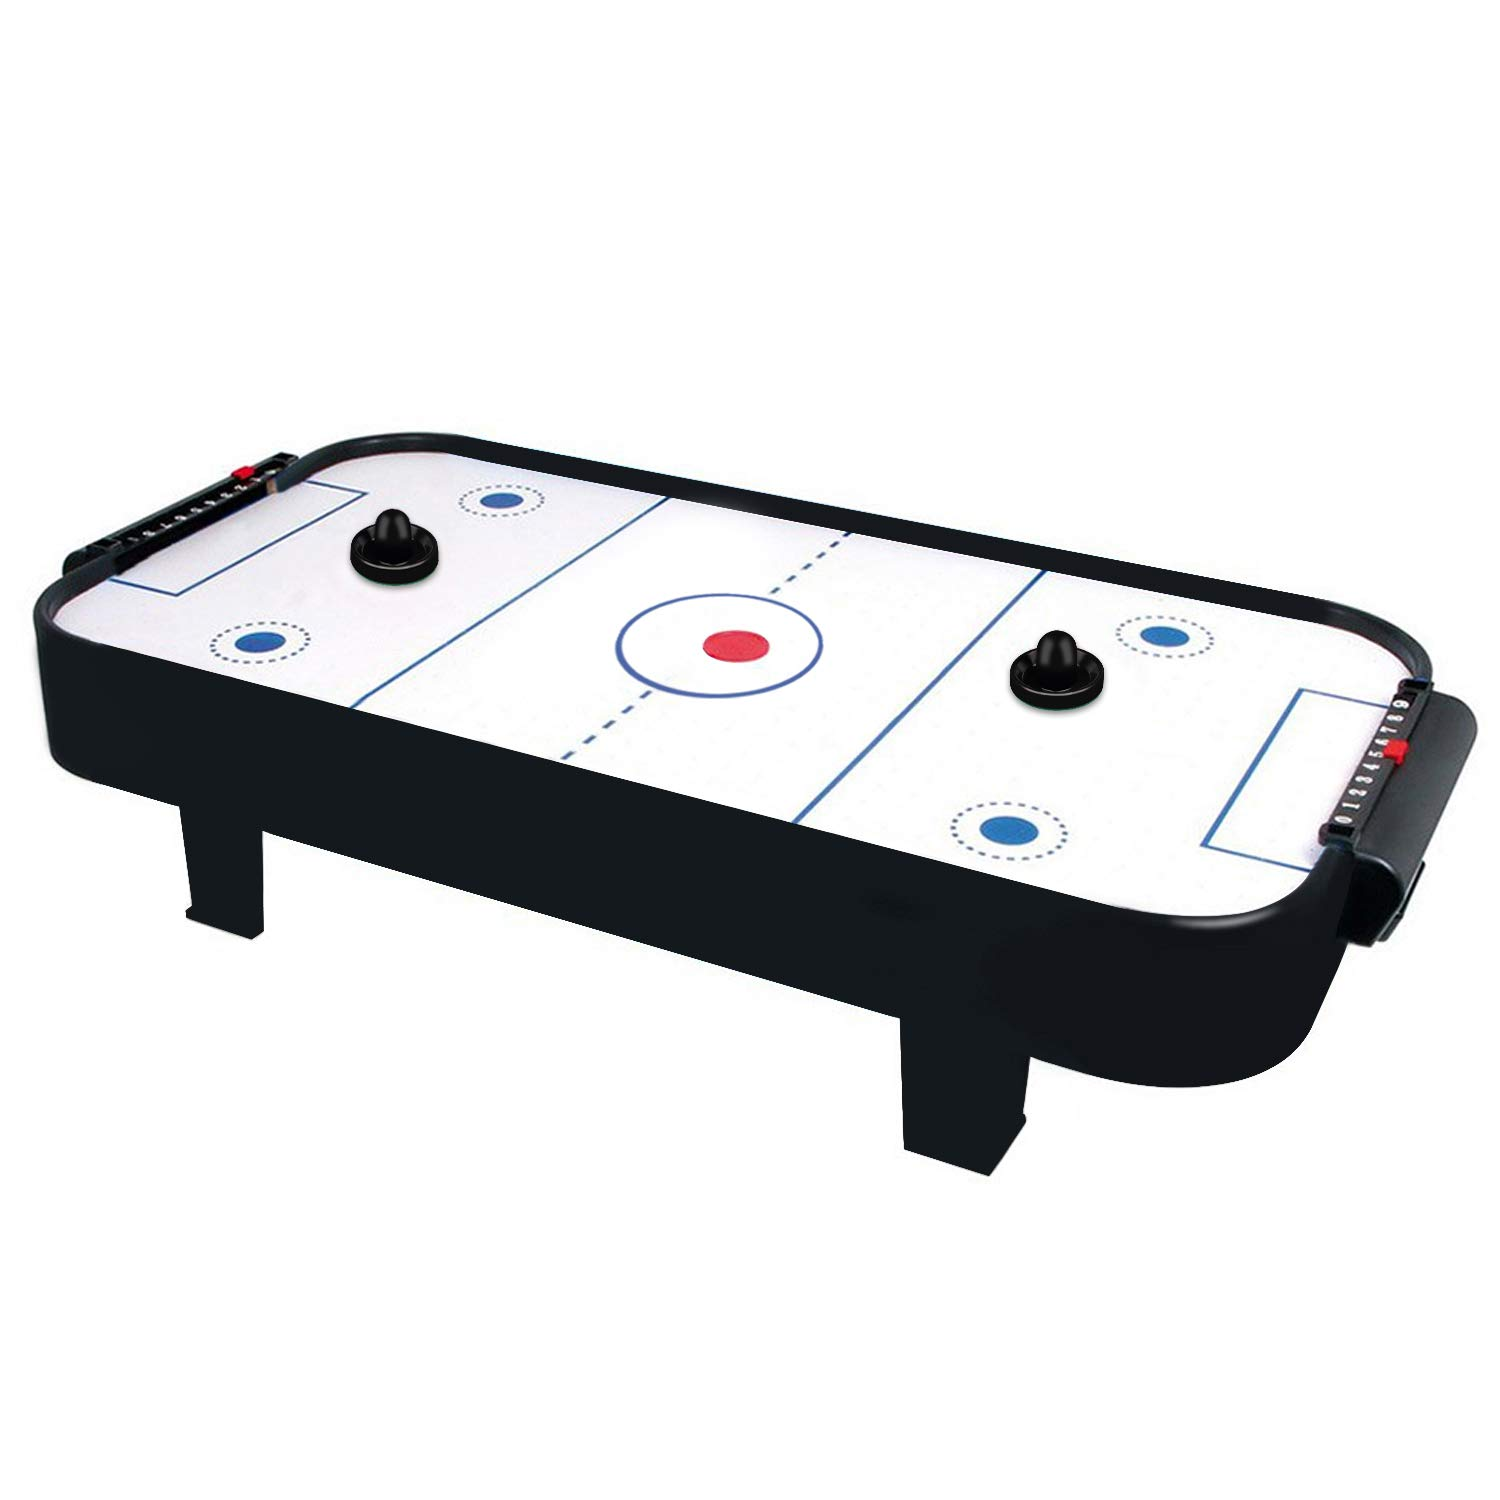 ONE250 Air Hockey Pushers and Red Air Hockey Pucks 4 Striker, 4 Puck Pack Goal Handles Paddles Replacement Accessories for Game Tables